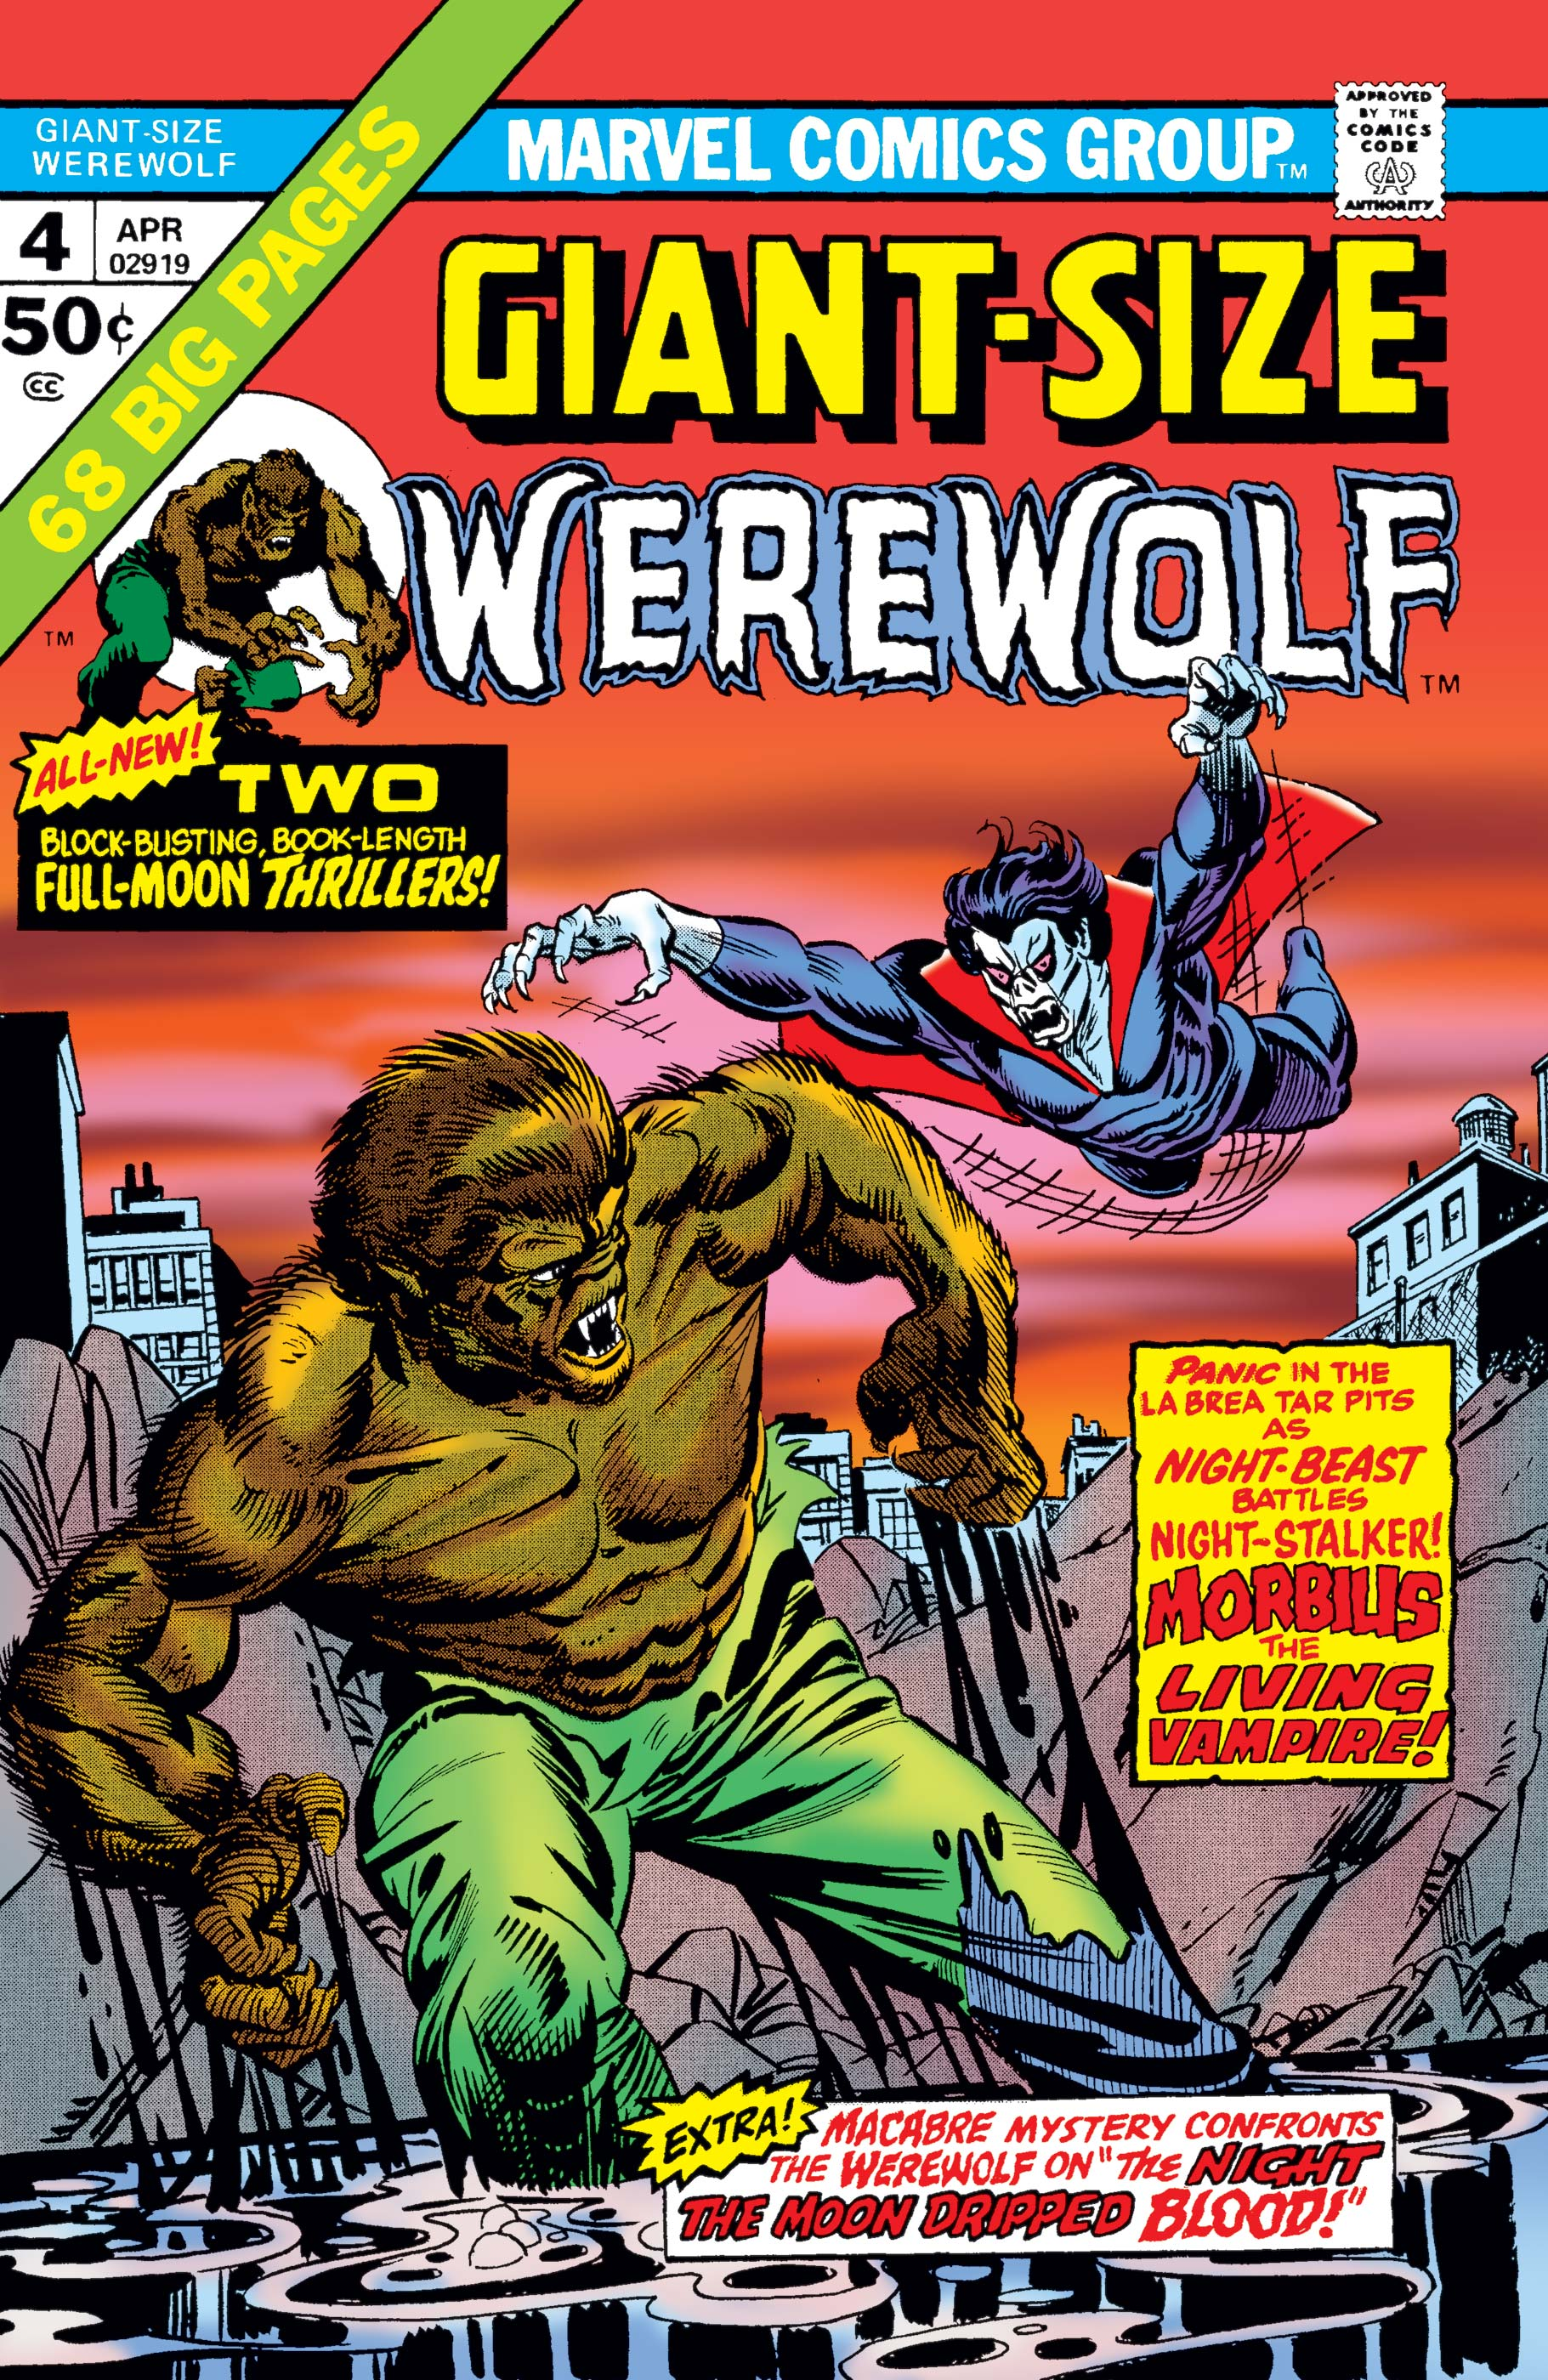 Giant-Size Werewolf by Night (1974) #4